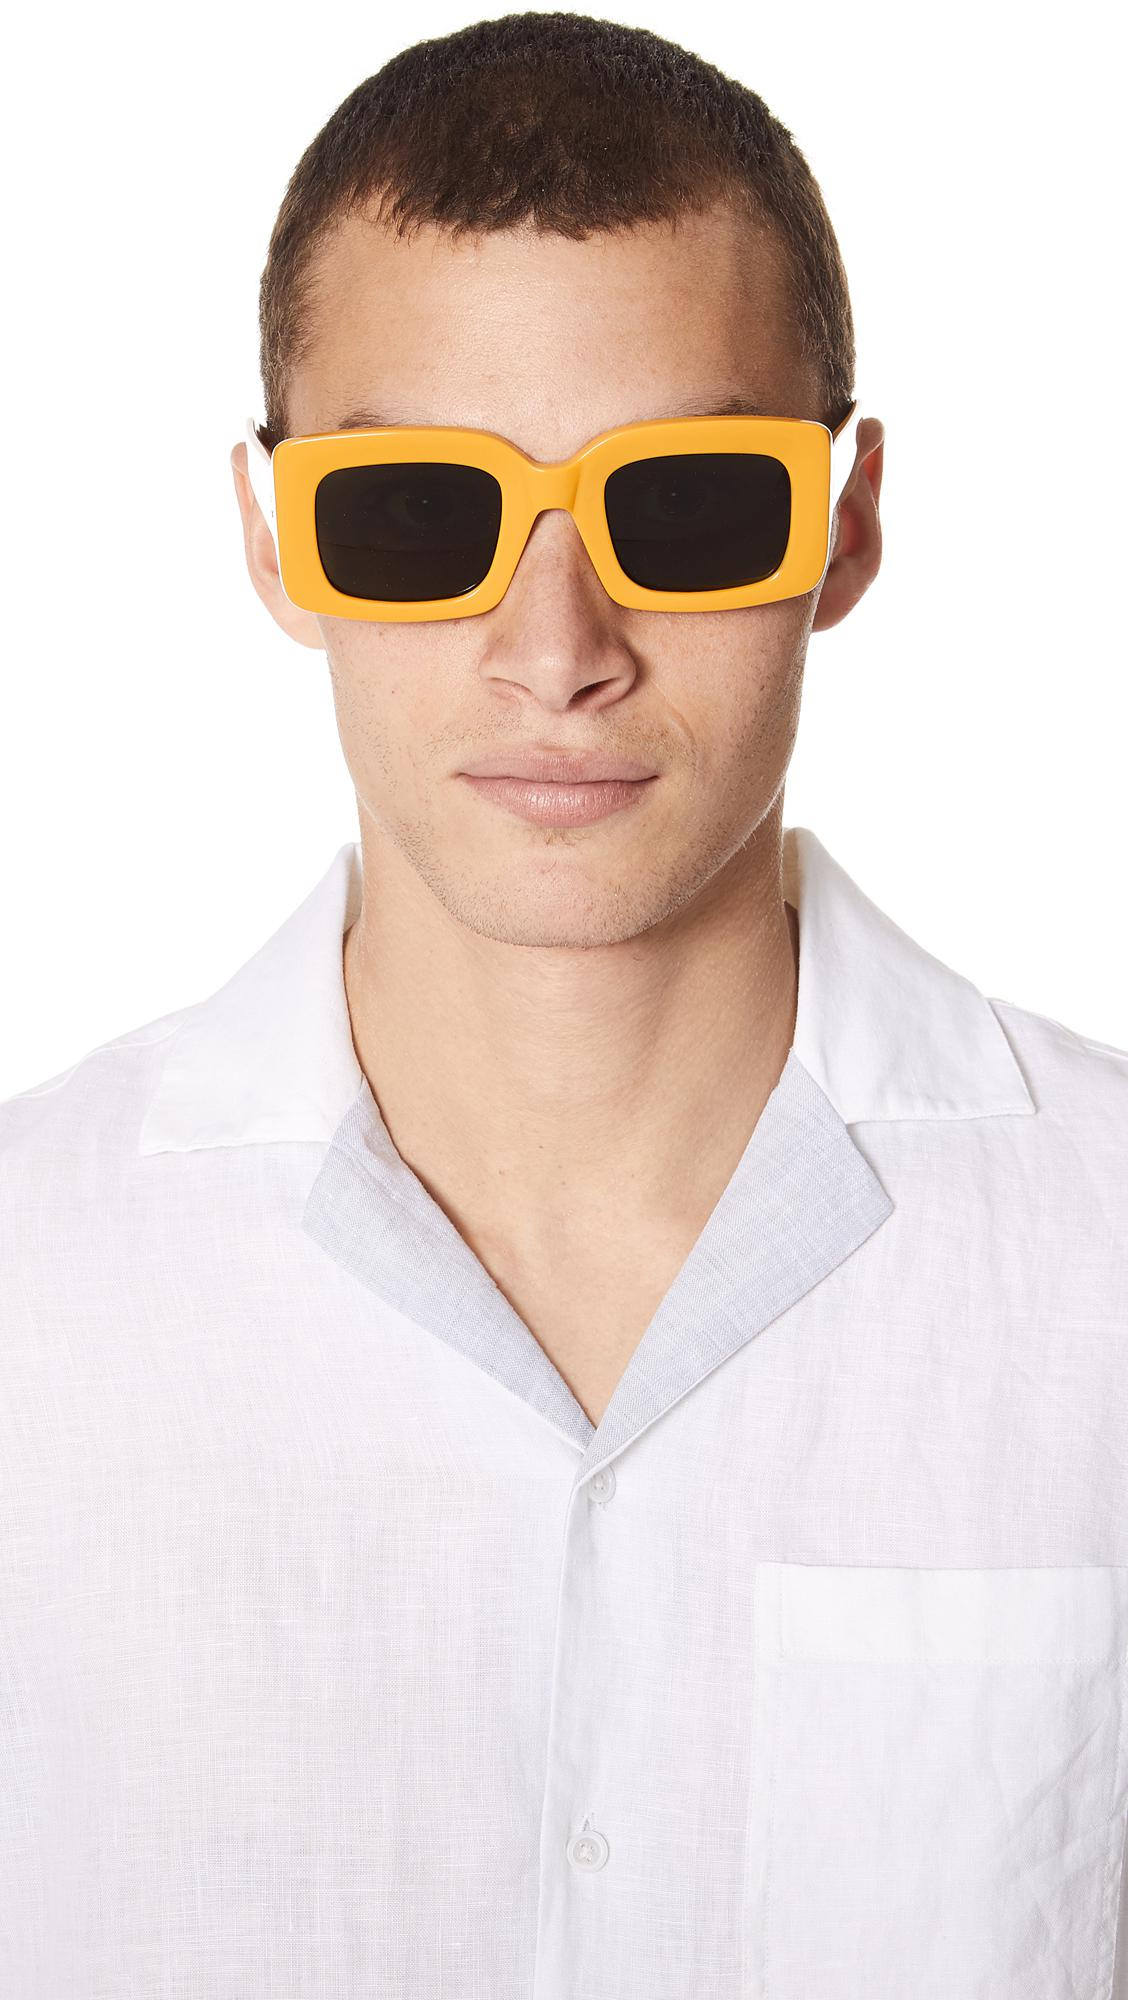 Raen Flatscreen Sunglasses for Men